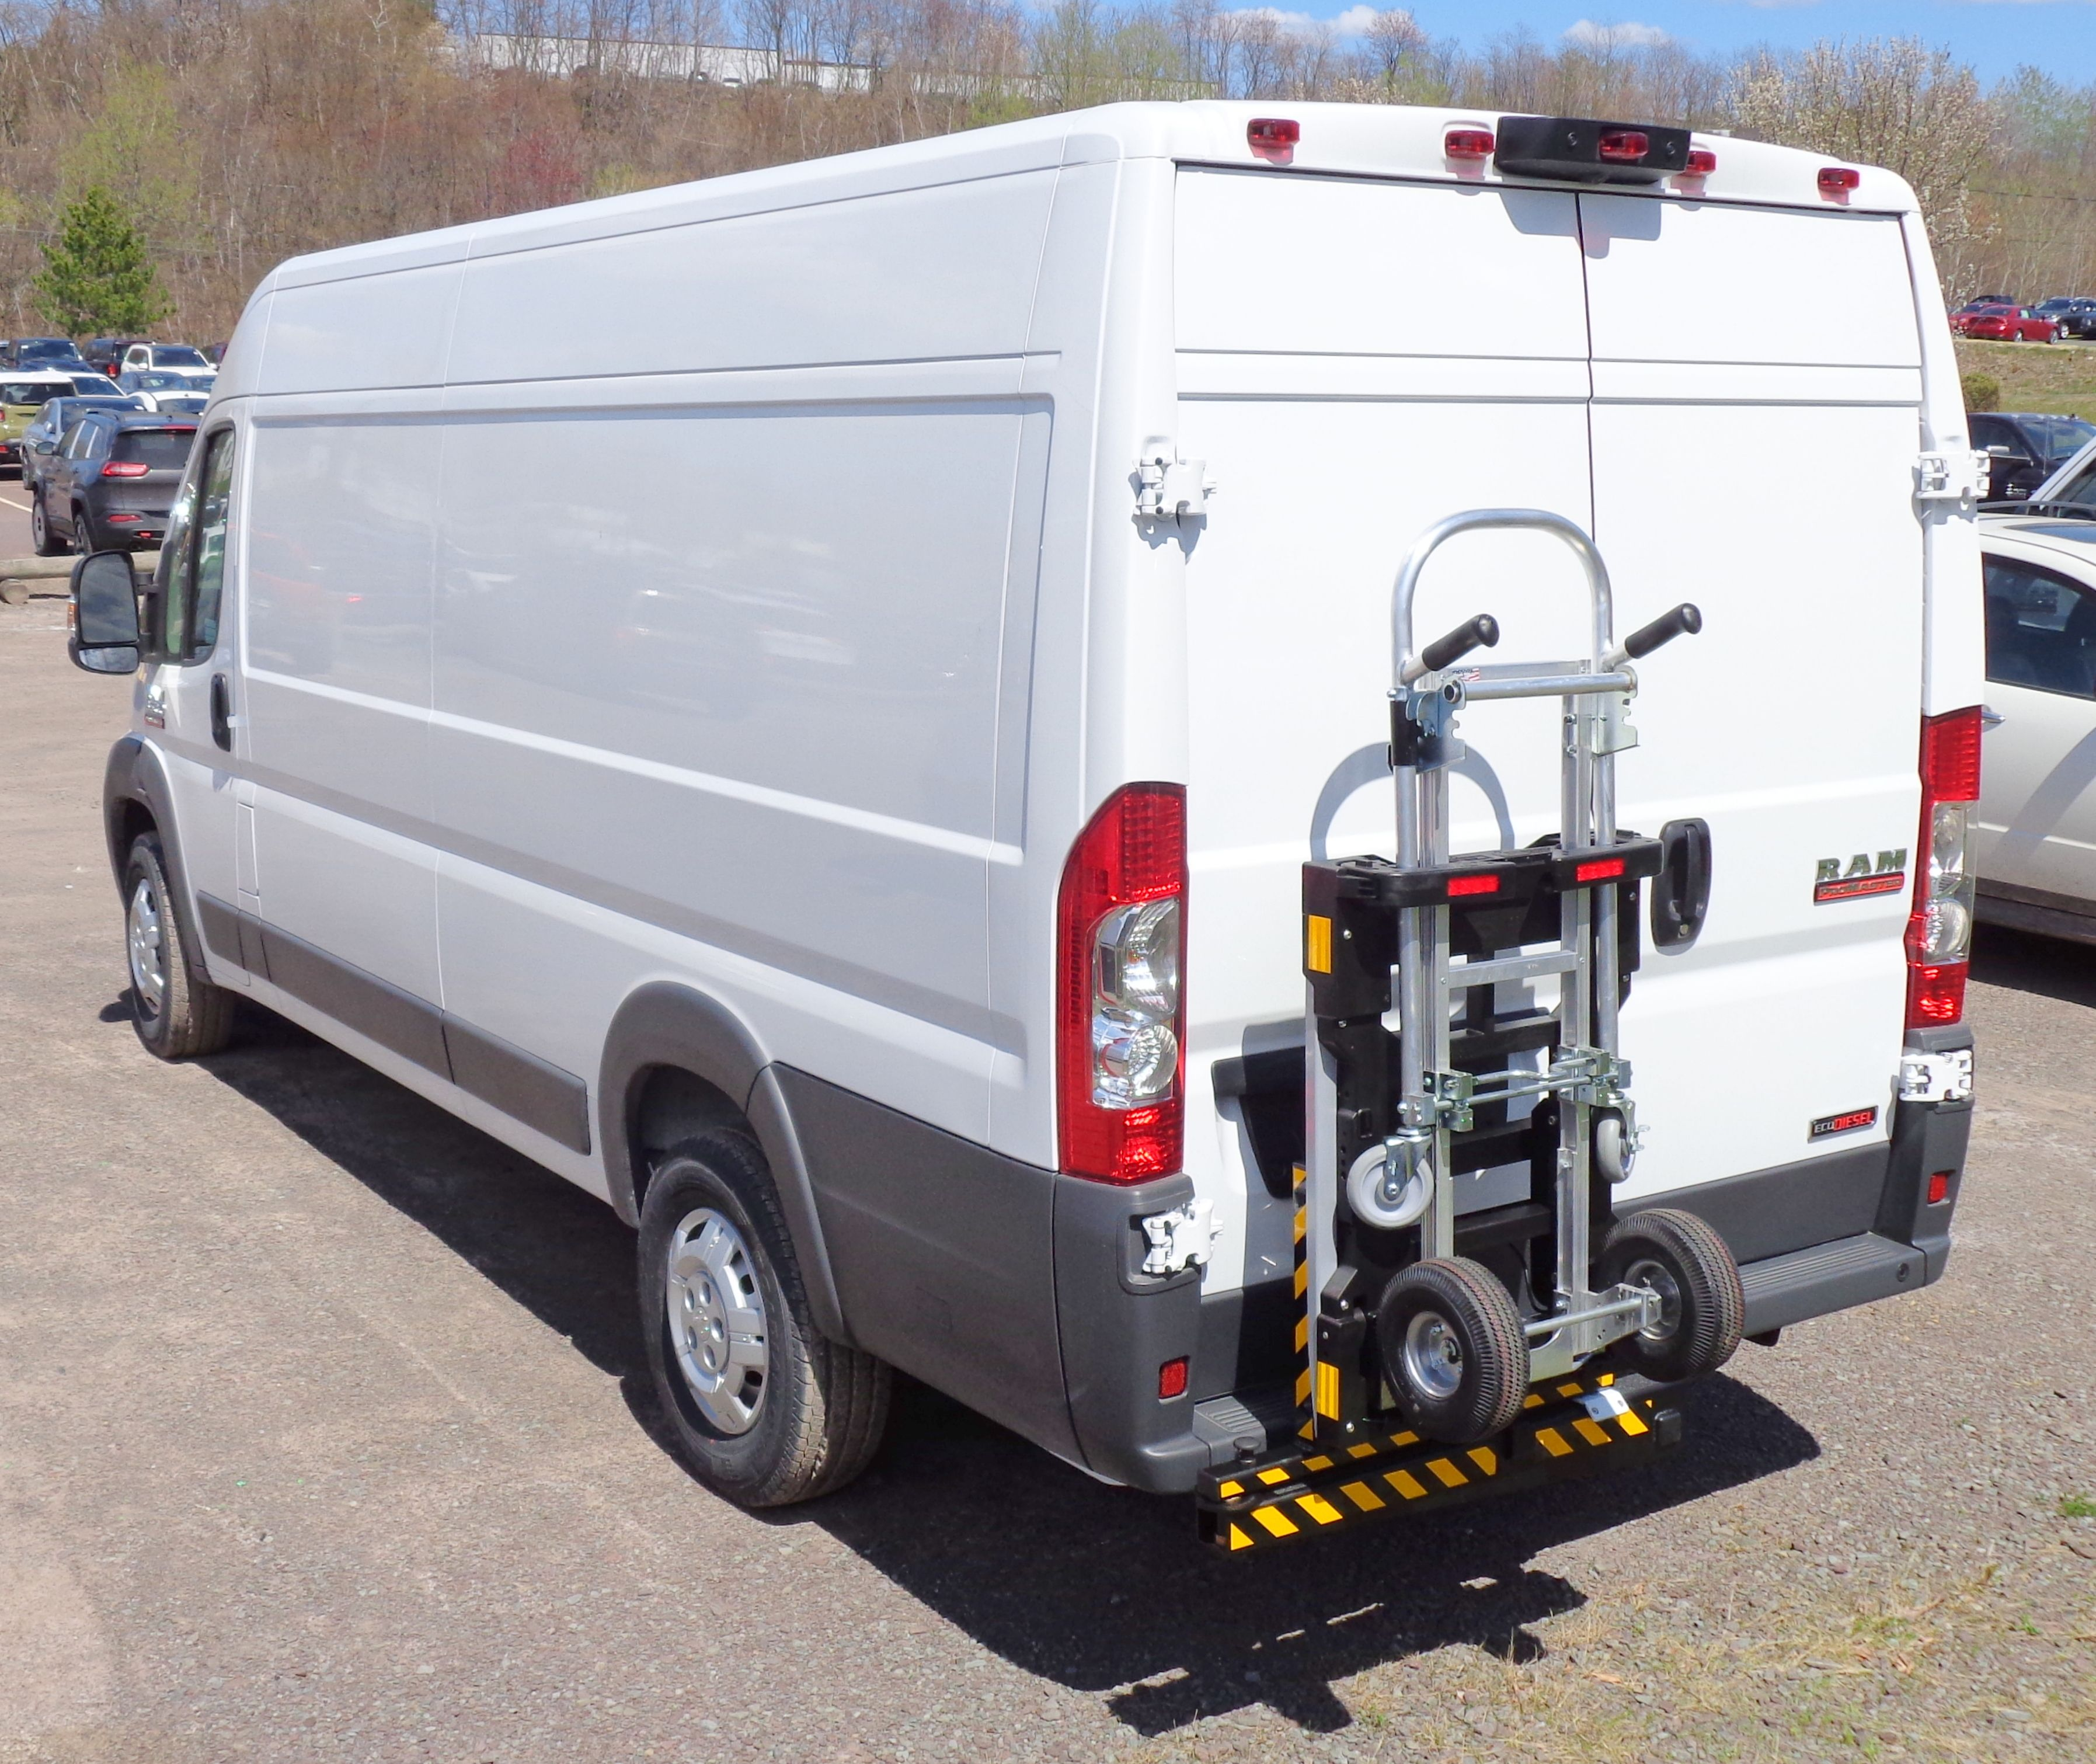 Hts Systems Trailer Hitch Mount Hts 20sdp For Dodge Promaster Cargo Delivery Van Requires A Standard Class Three 2 In Truck Transport Hand Trucks Cargo Van